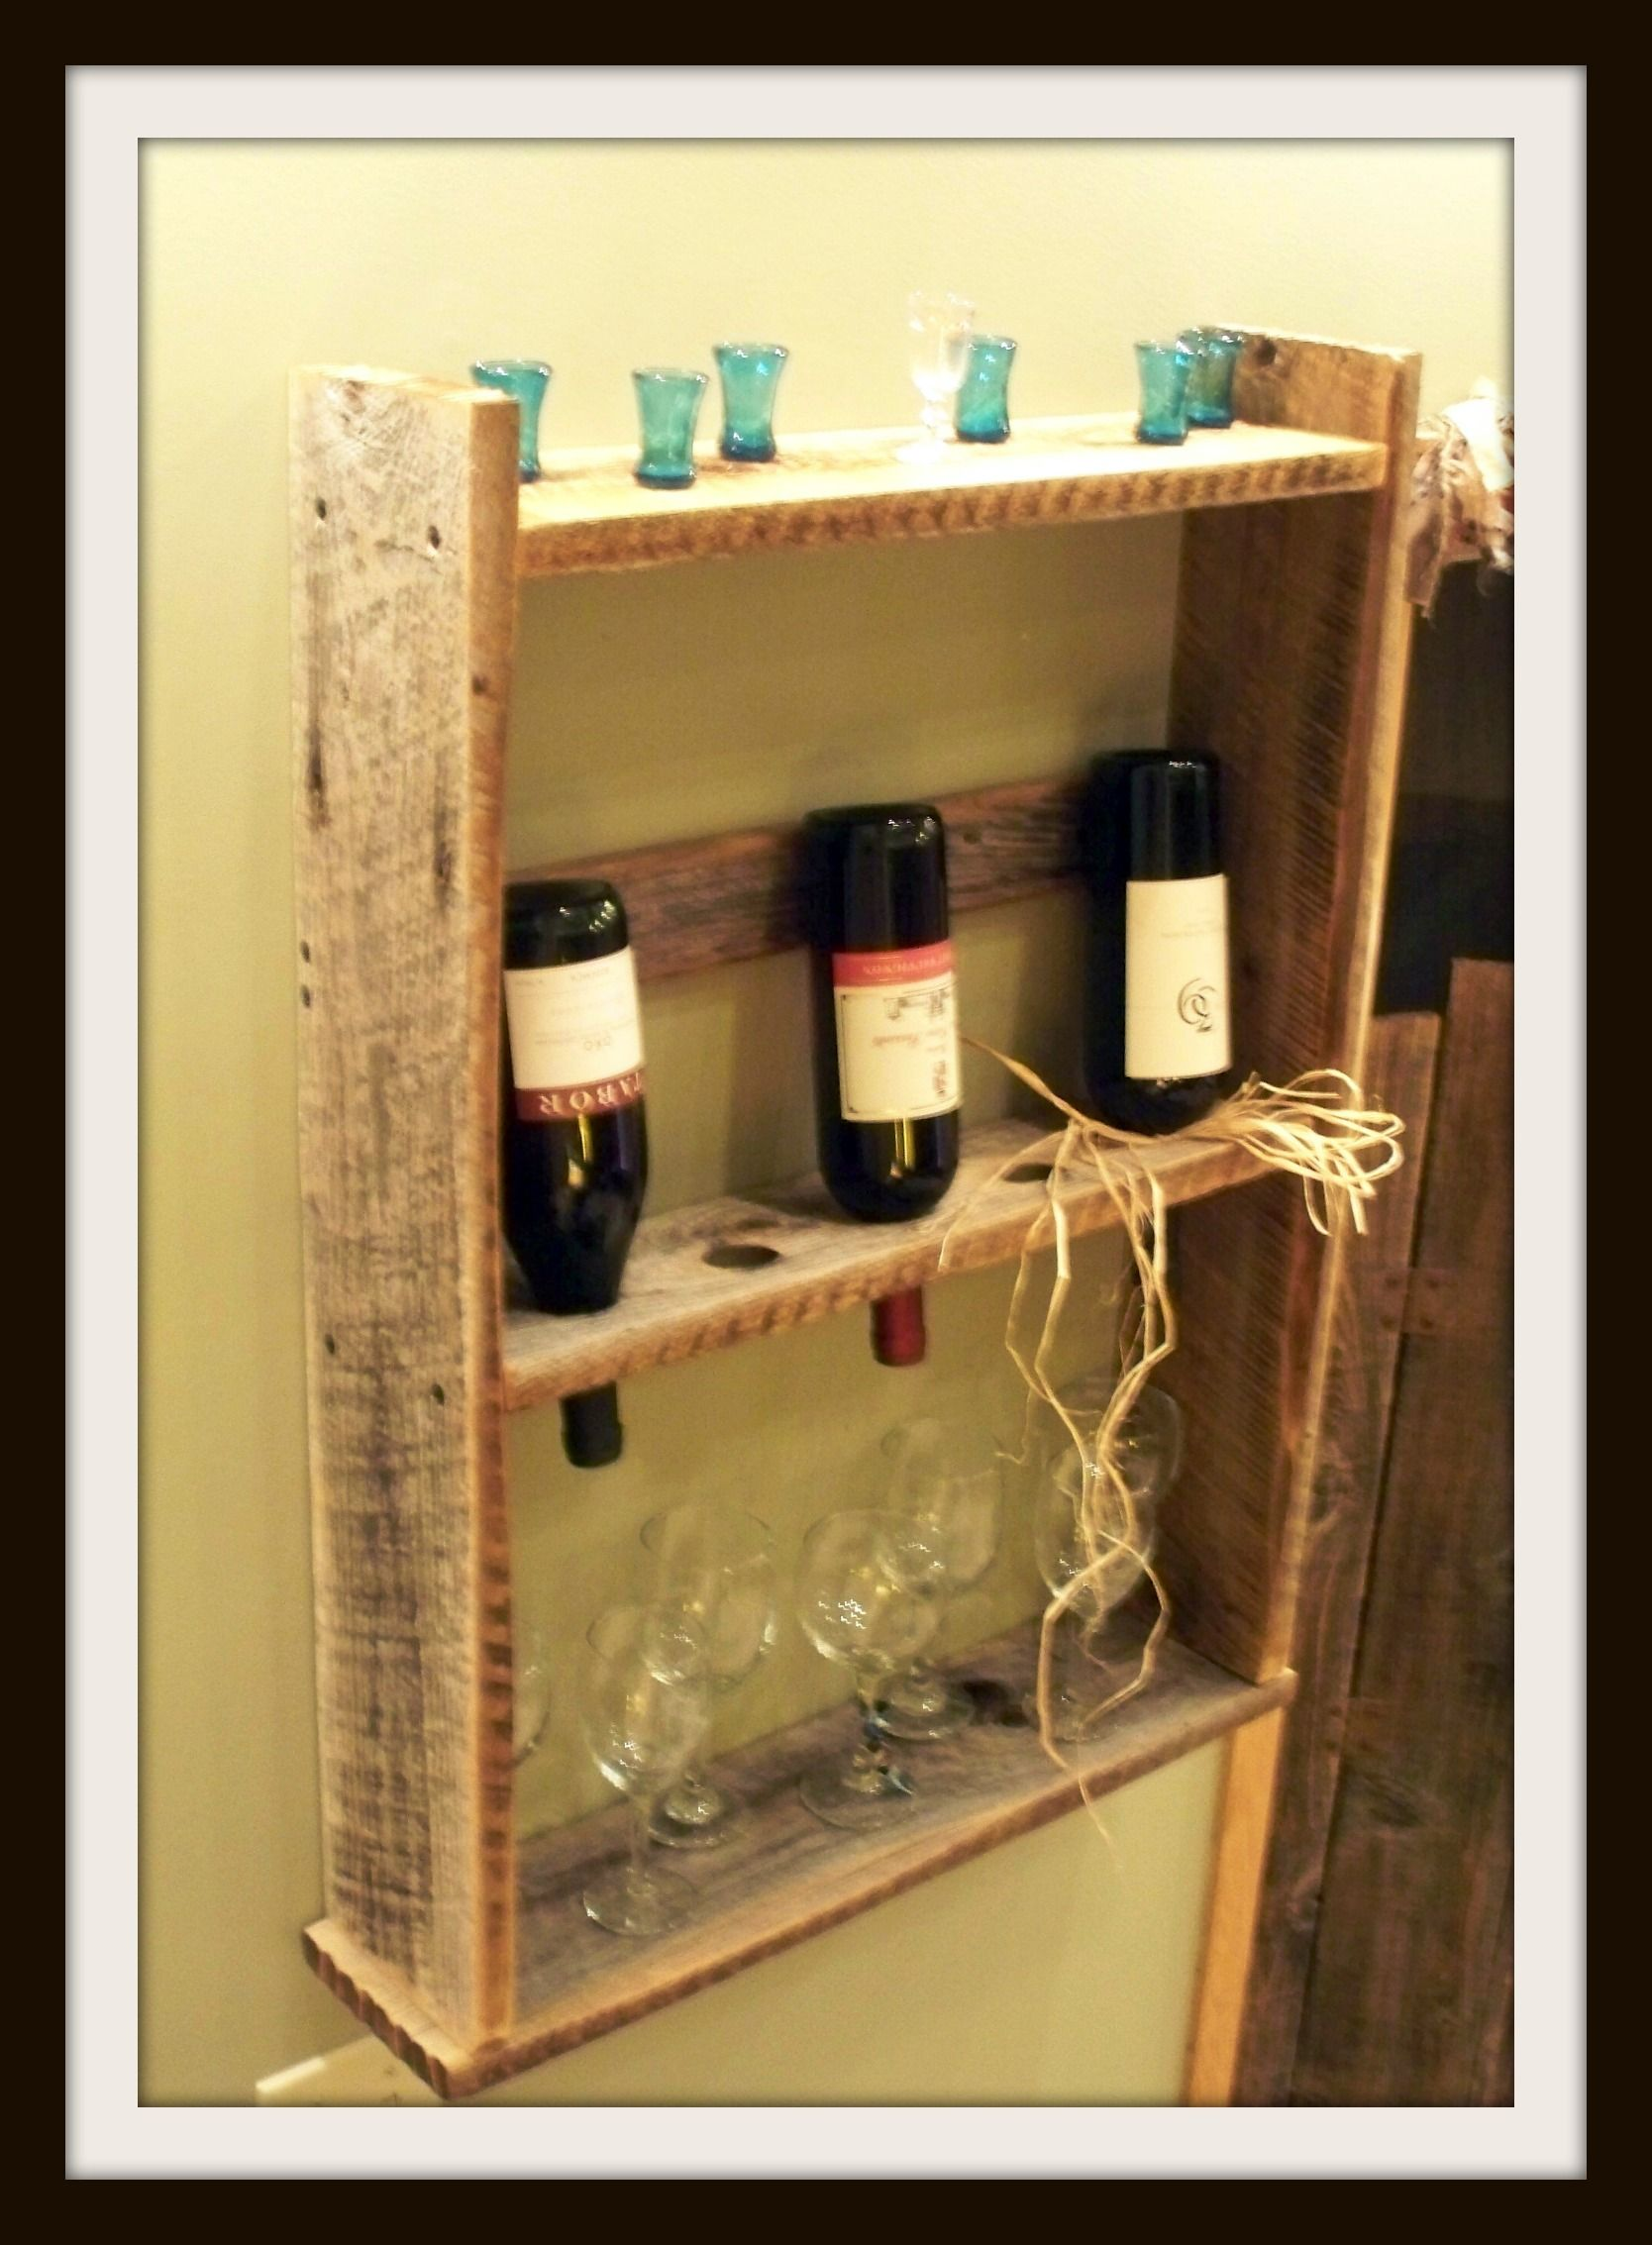 1000 images about barn wood ideas on pinterest barn wood travel maps and stall signs barn wood ideas